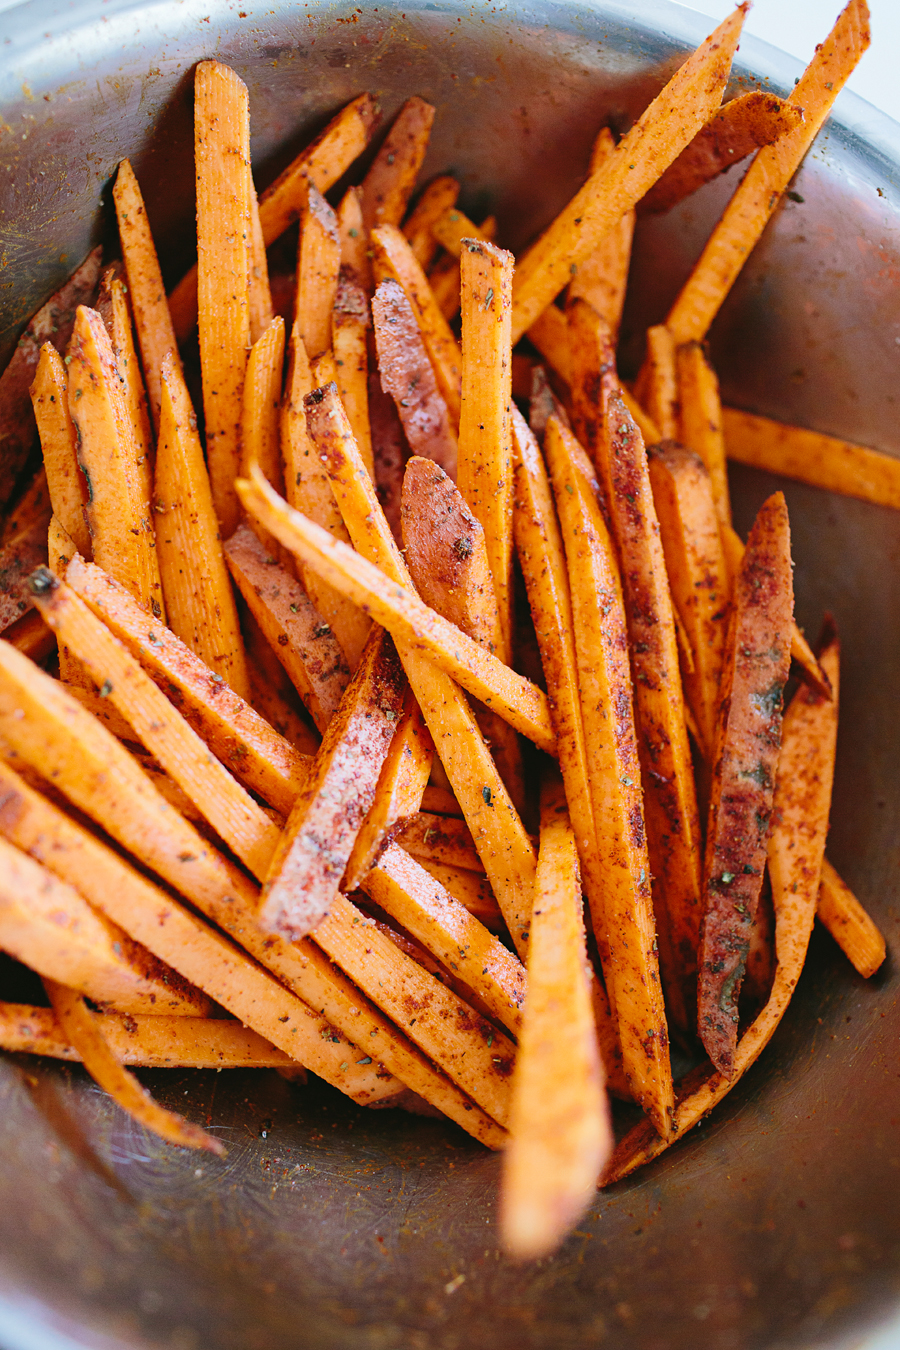 brookecourtney_sweetpotatofries_ovenbaked_frysauce-8.jpg